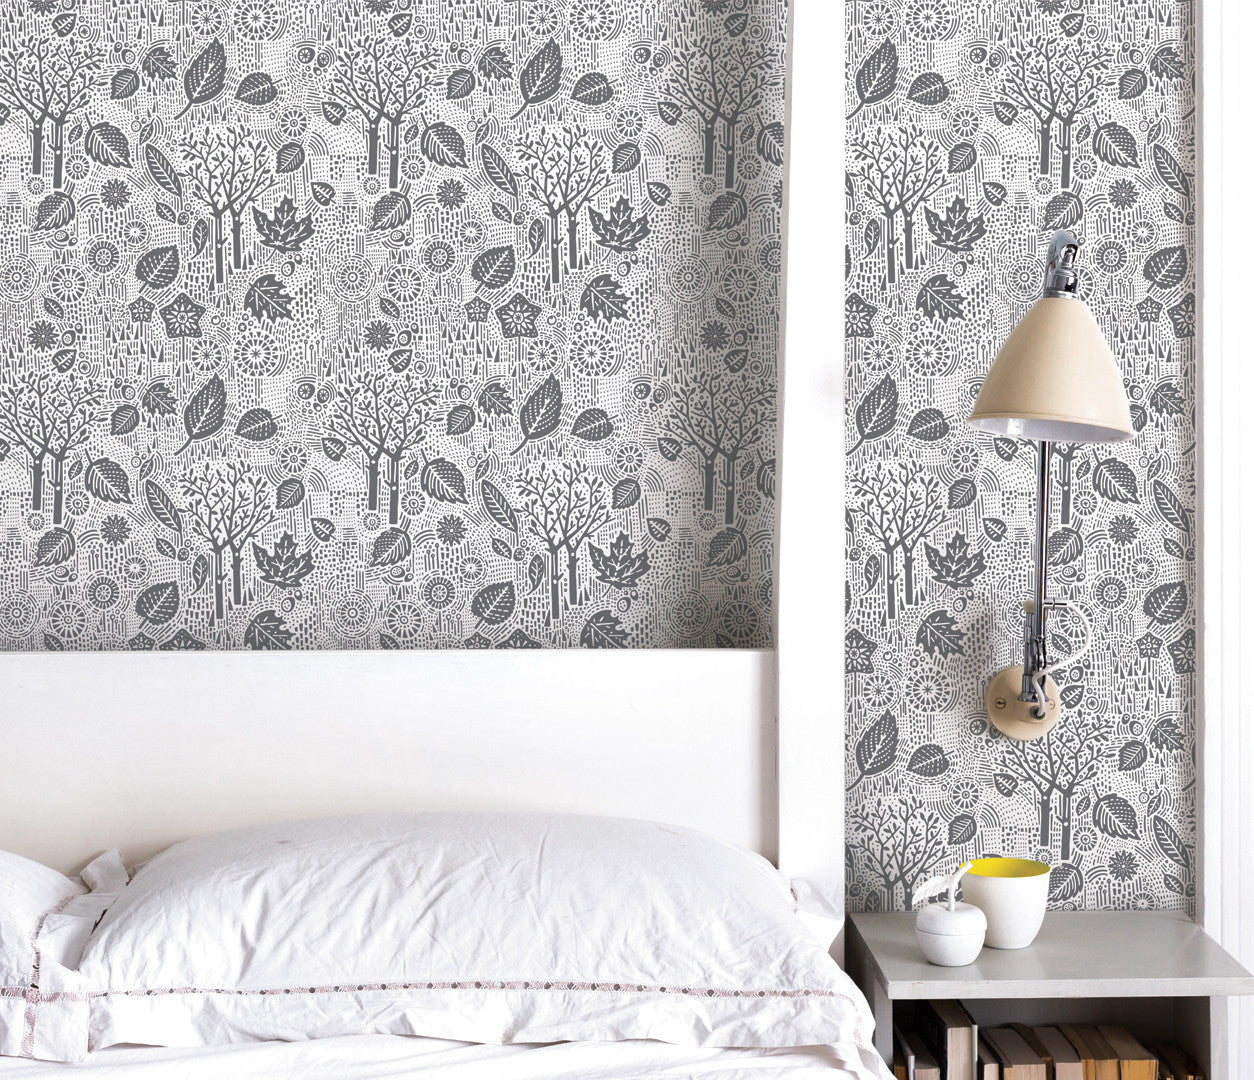 Bedroom wallpaper ideas, Autumn Leaves in charcoal grey, nature inspired